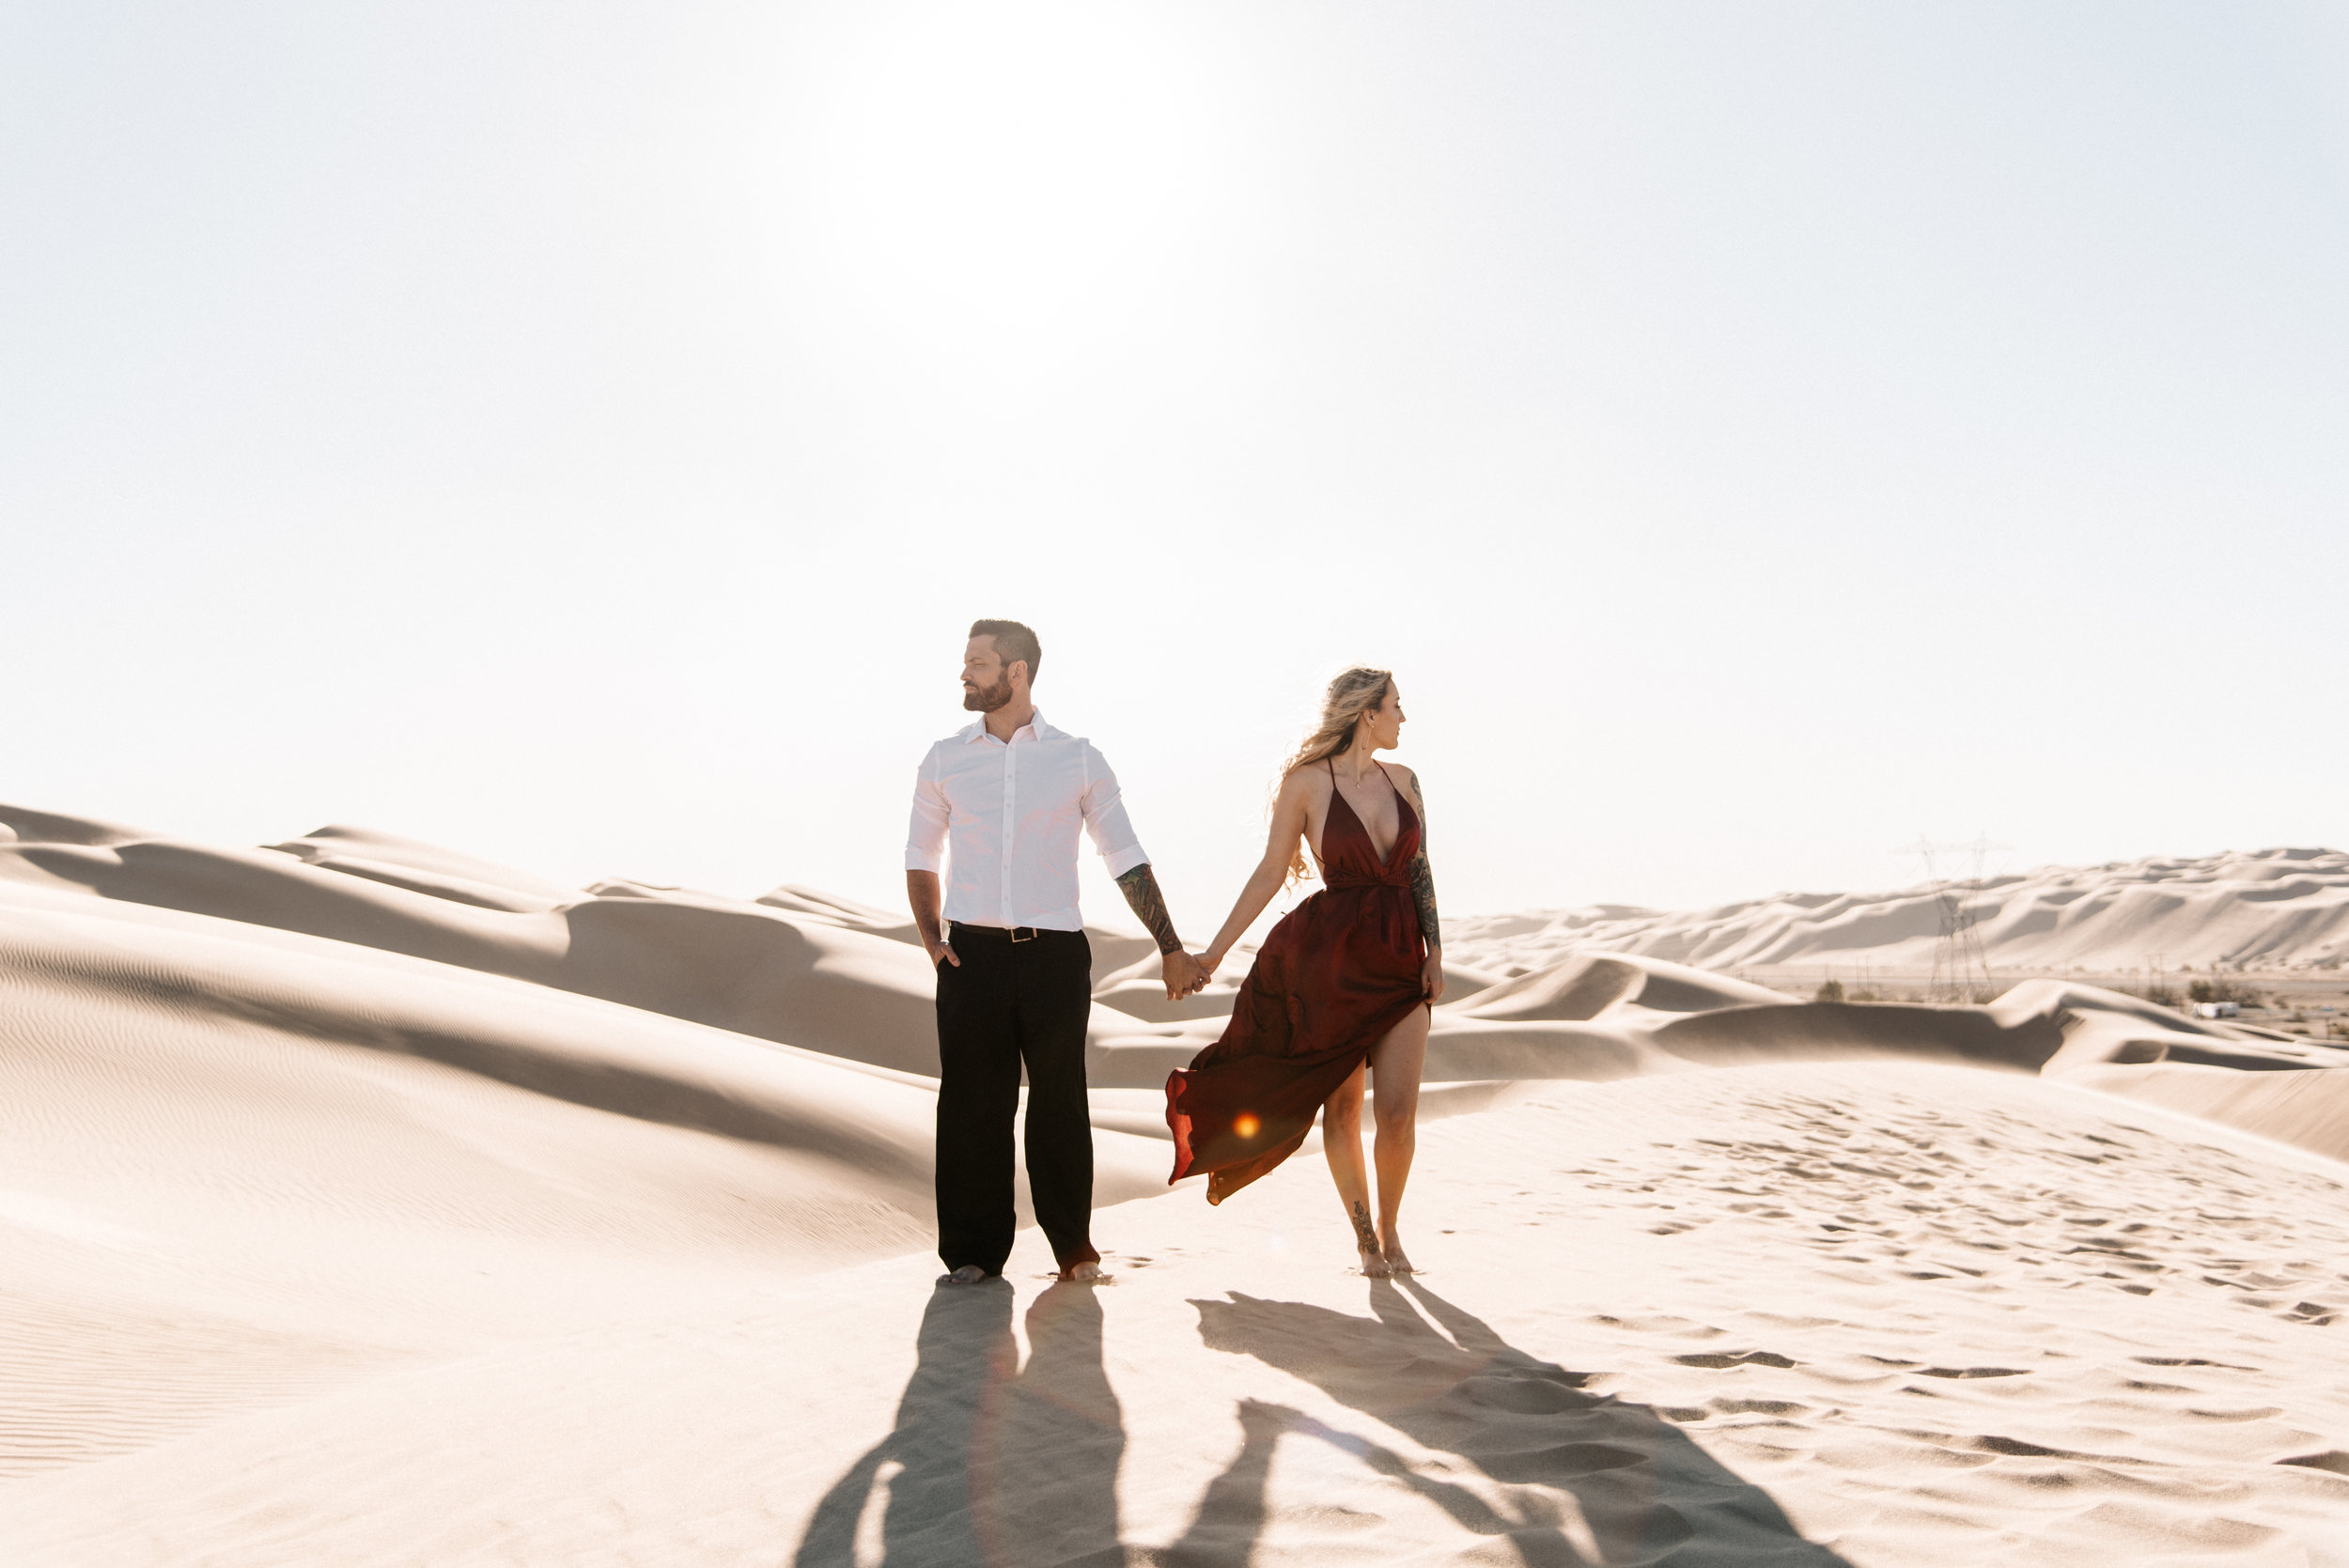 SamErica Studios - Modern San Diego Engagement Photographer - Adventure Engagement Session in Glamis Sand Dunes California-32.jpg